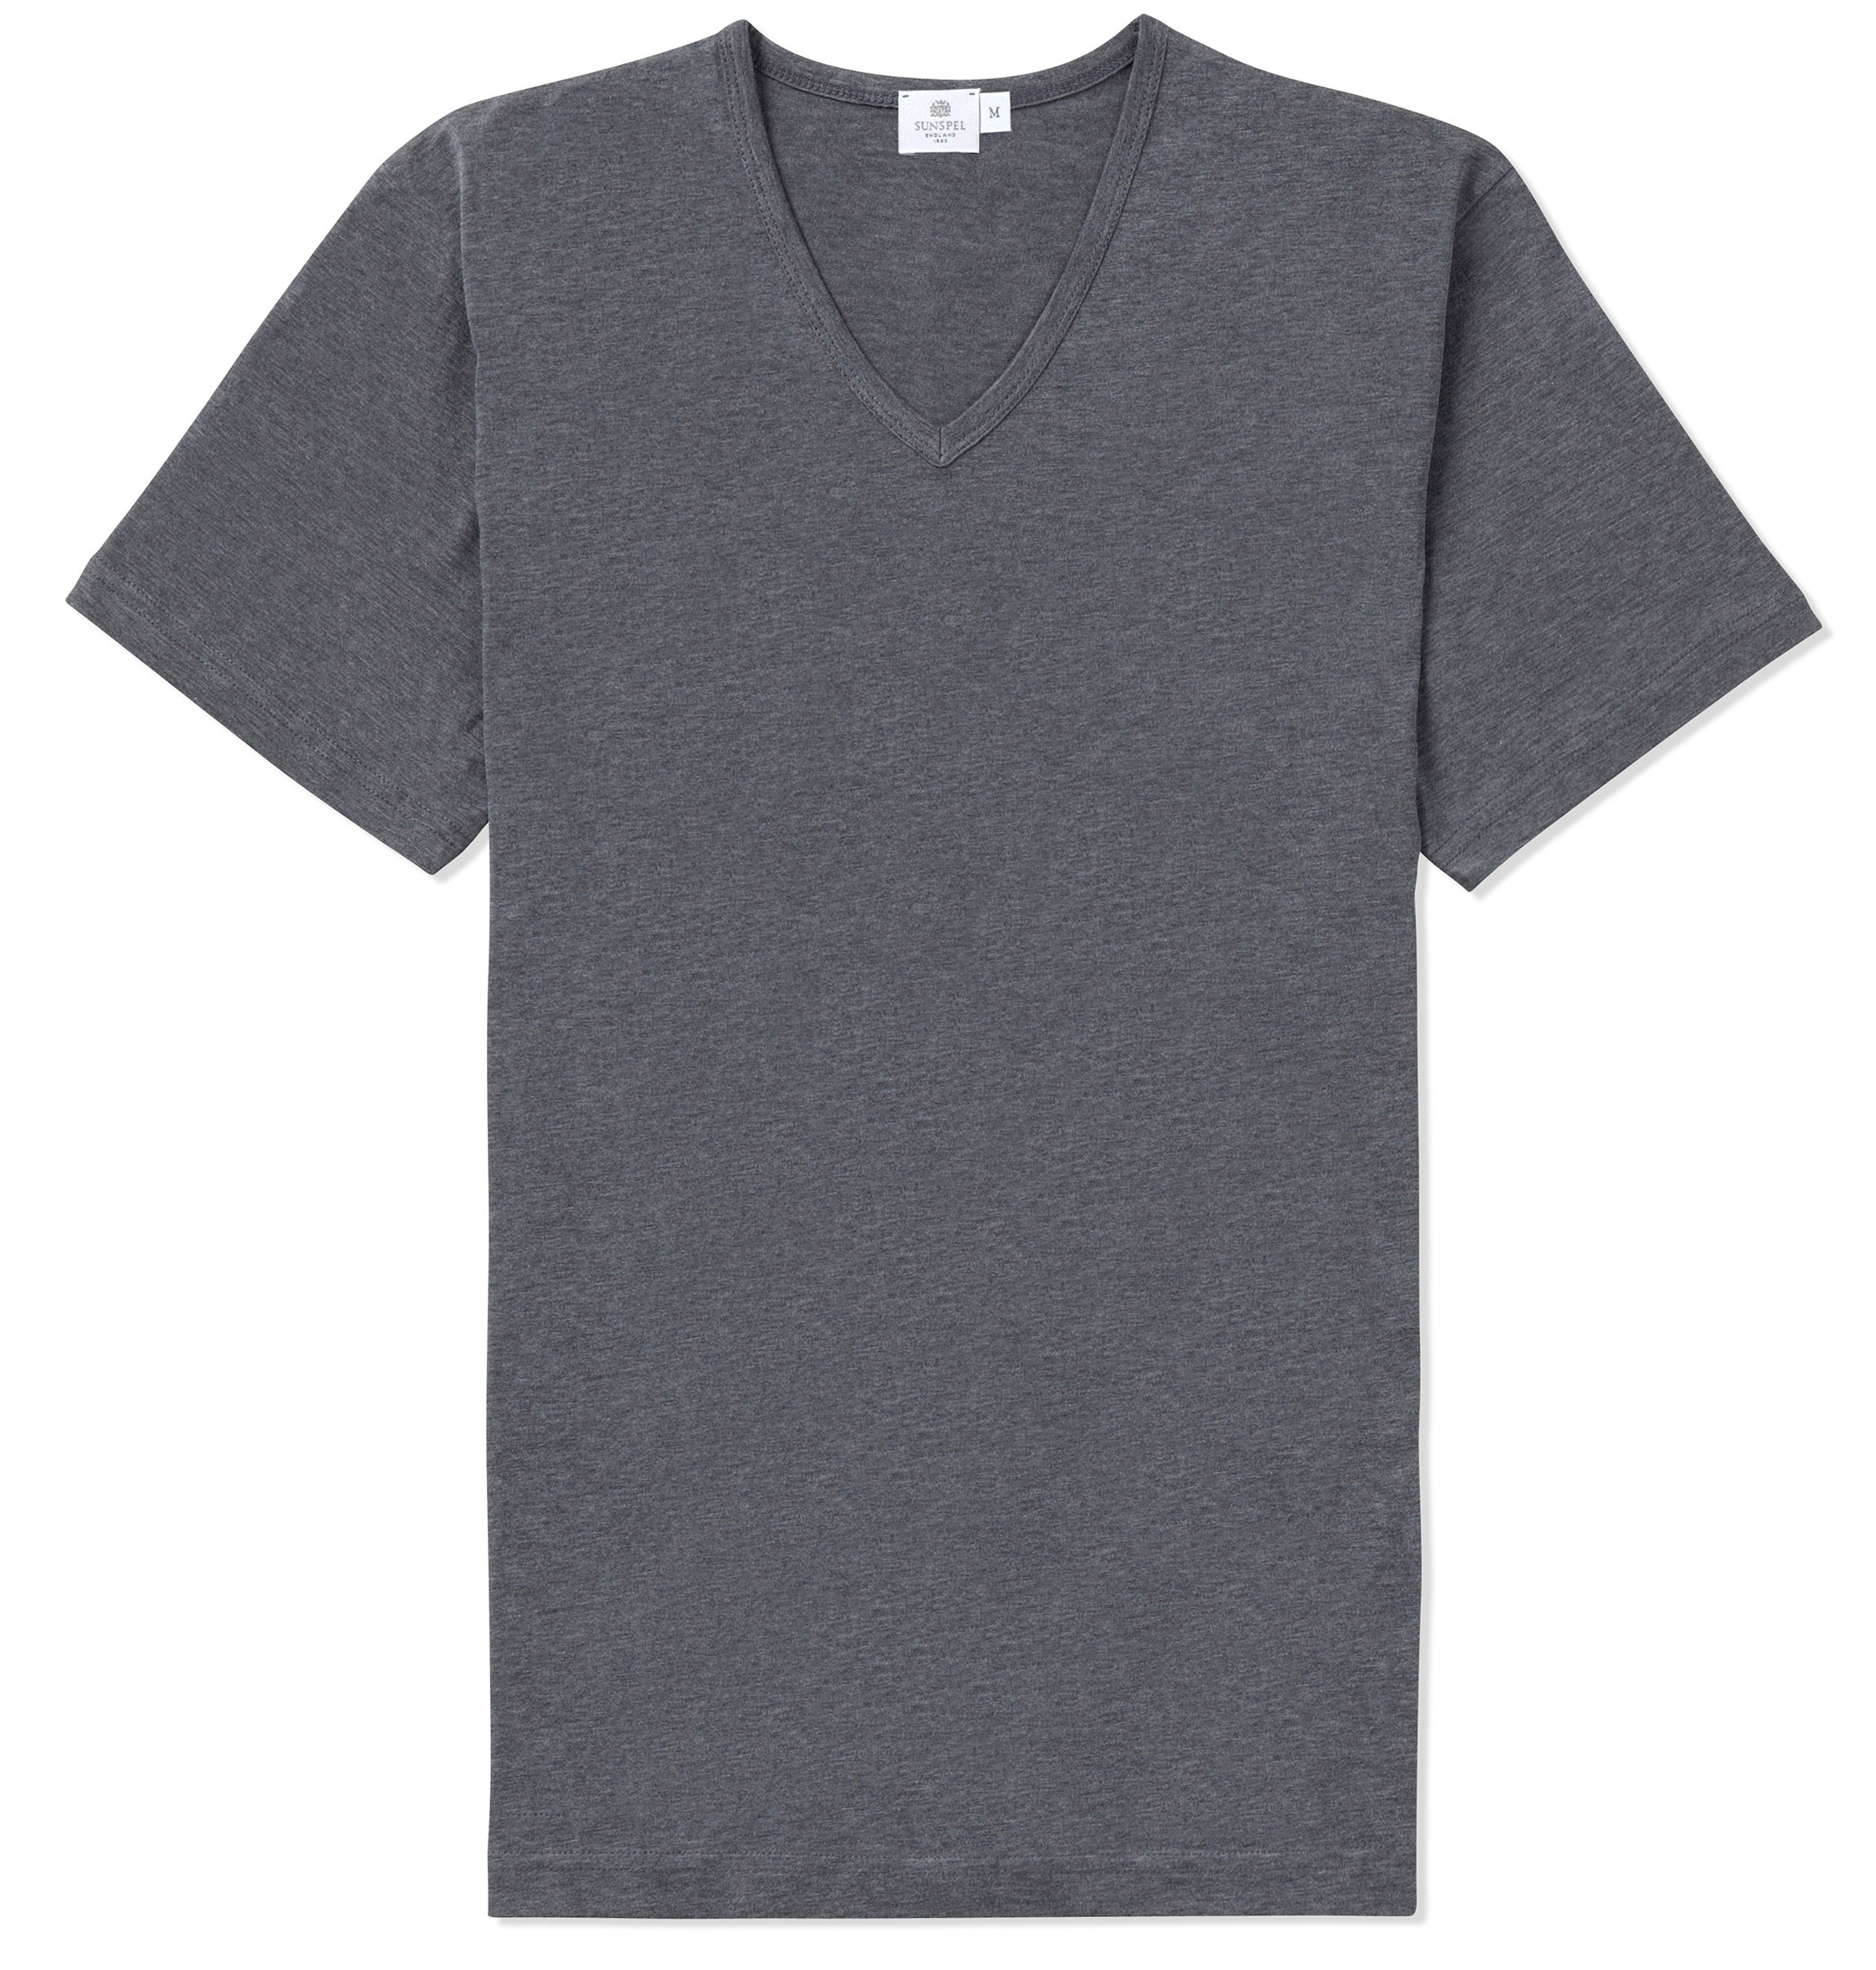 Sunspel short sleeve v neck t shirt in gray for men for V neck black t shirt